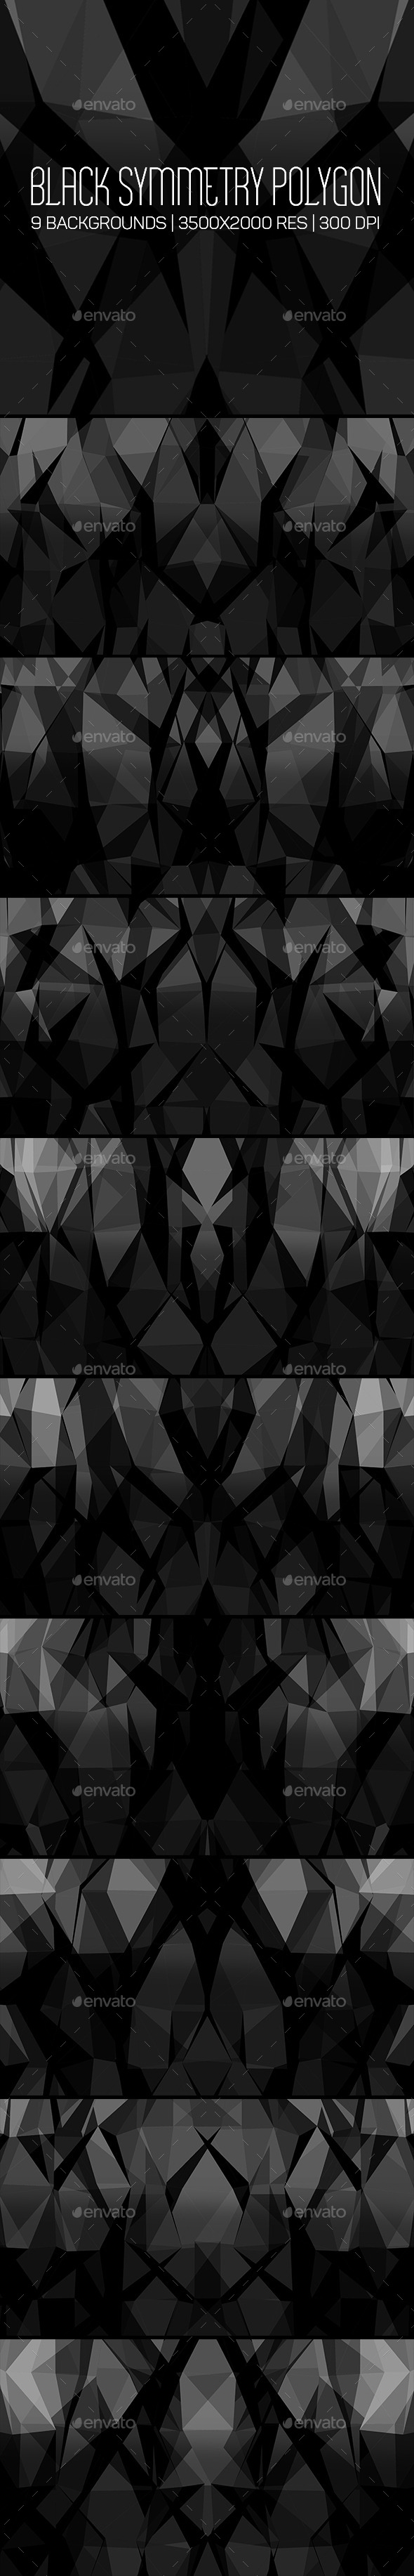 Black Symmetry Polygon Backgrounds - Abstract Backgrounds